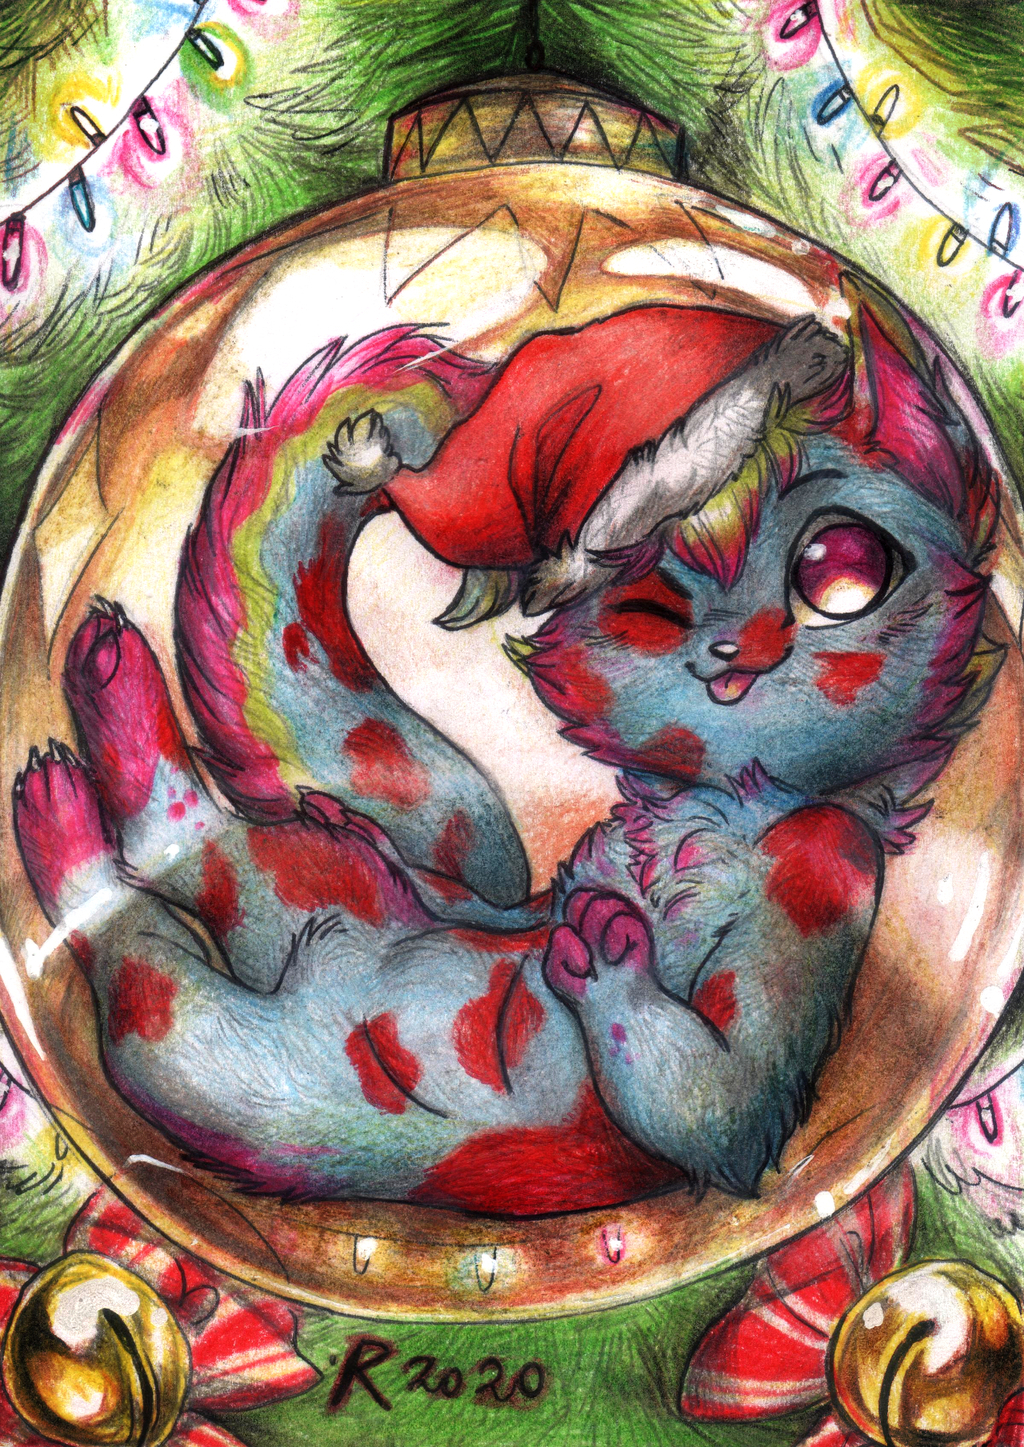 Most recent image: Chibi Commission - Christmas ball